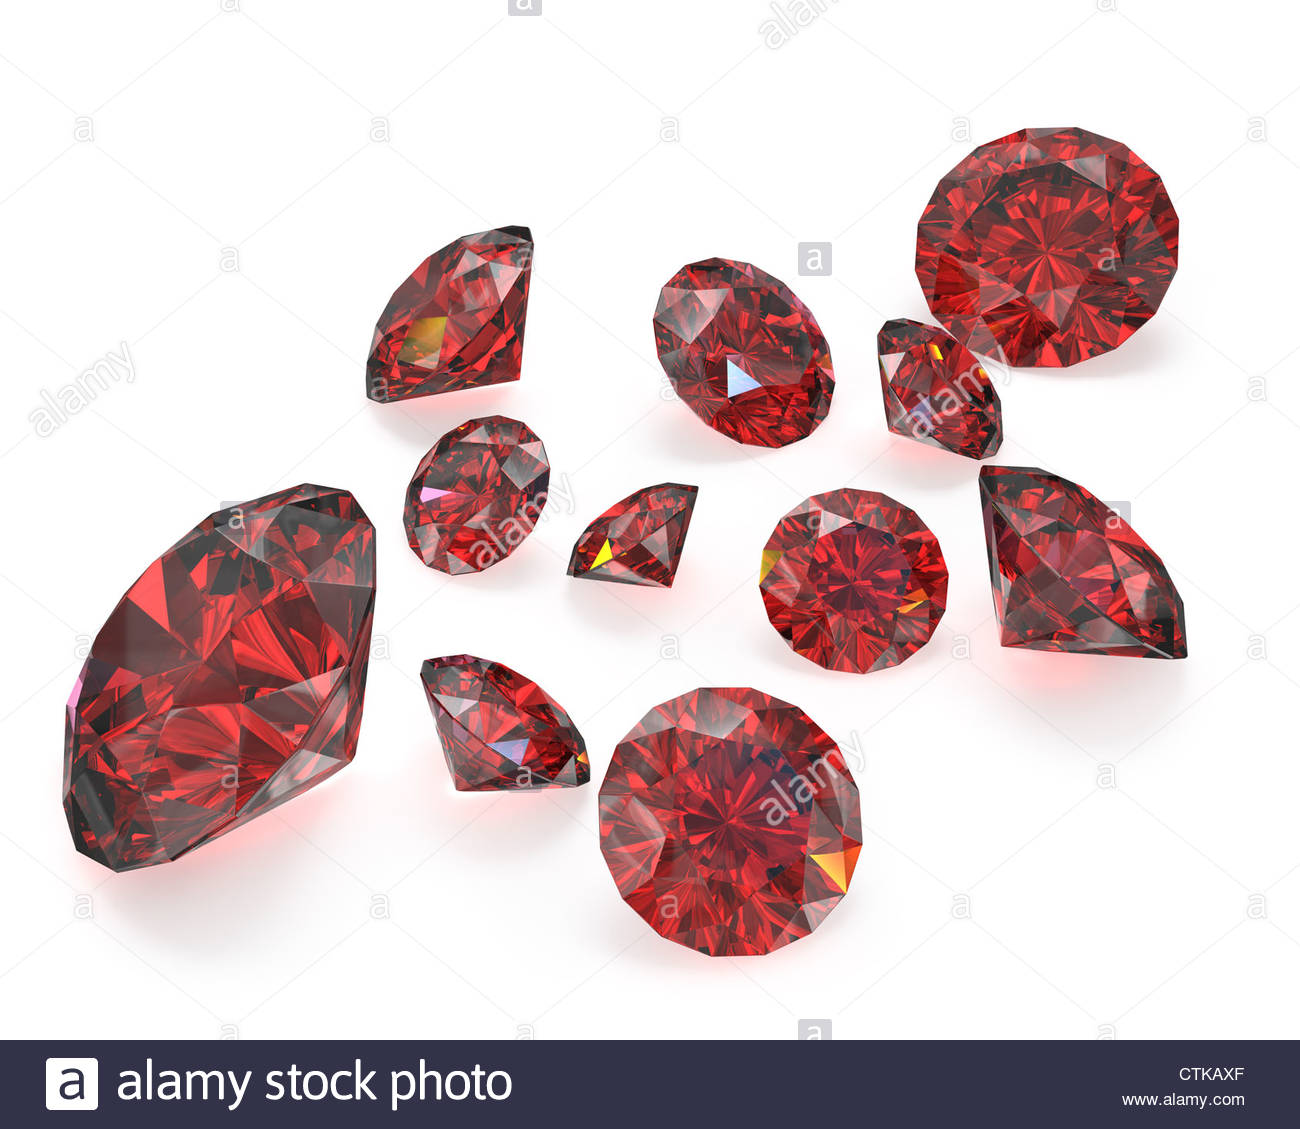 Few round cut rubies isolated on white background Stock Photo 1300x1129